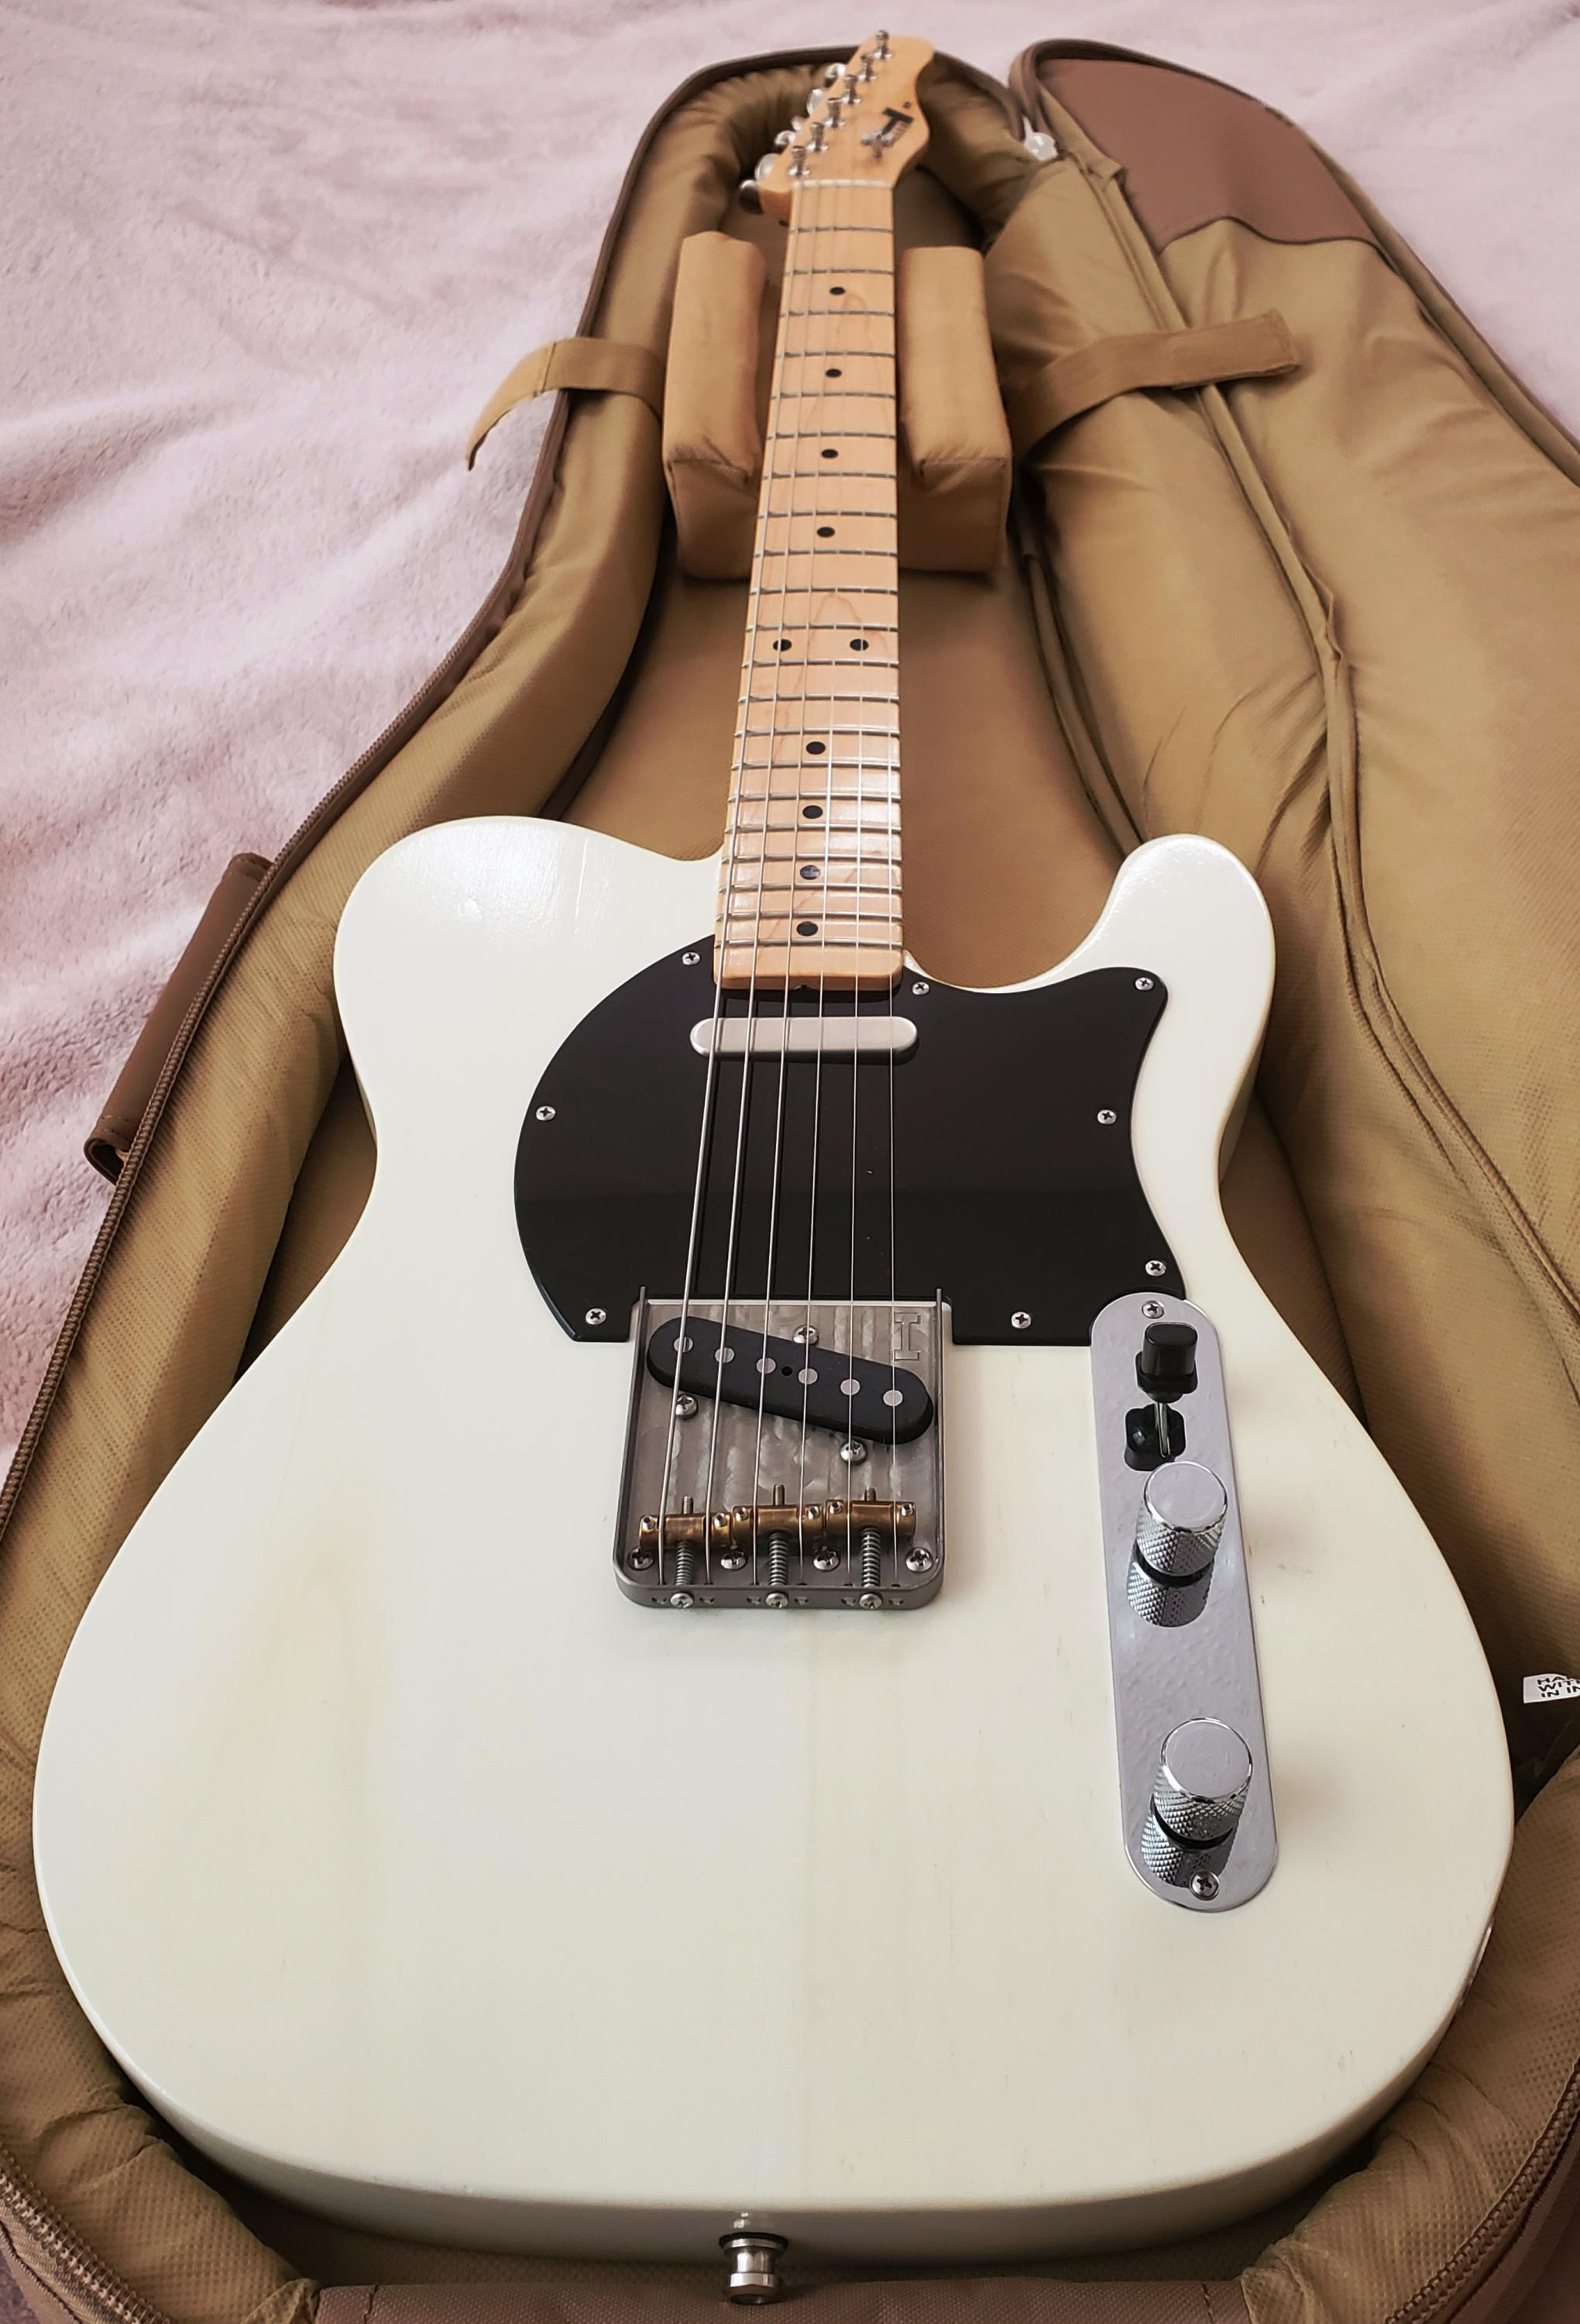 Telecaster Love Thread, No Archtops Allowed-20210116_161805-jpg